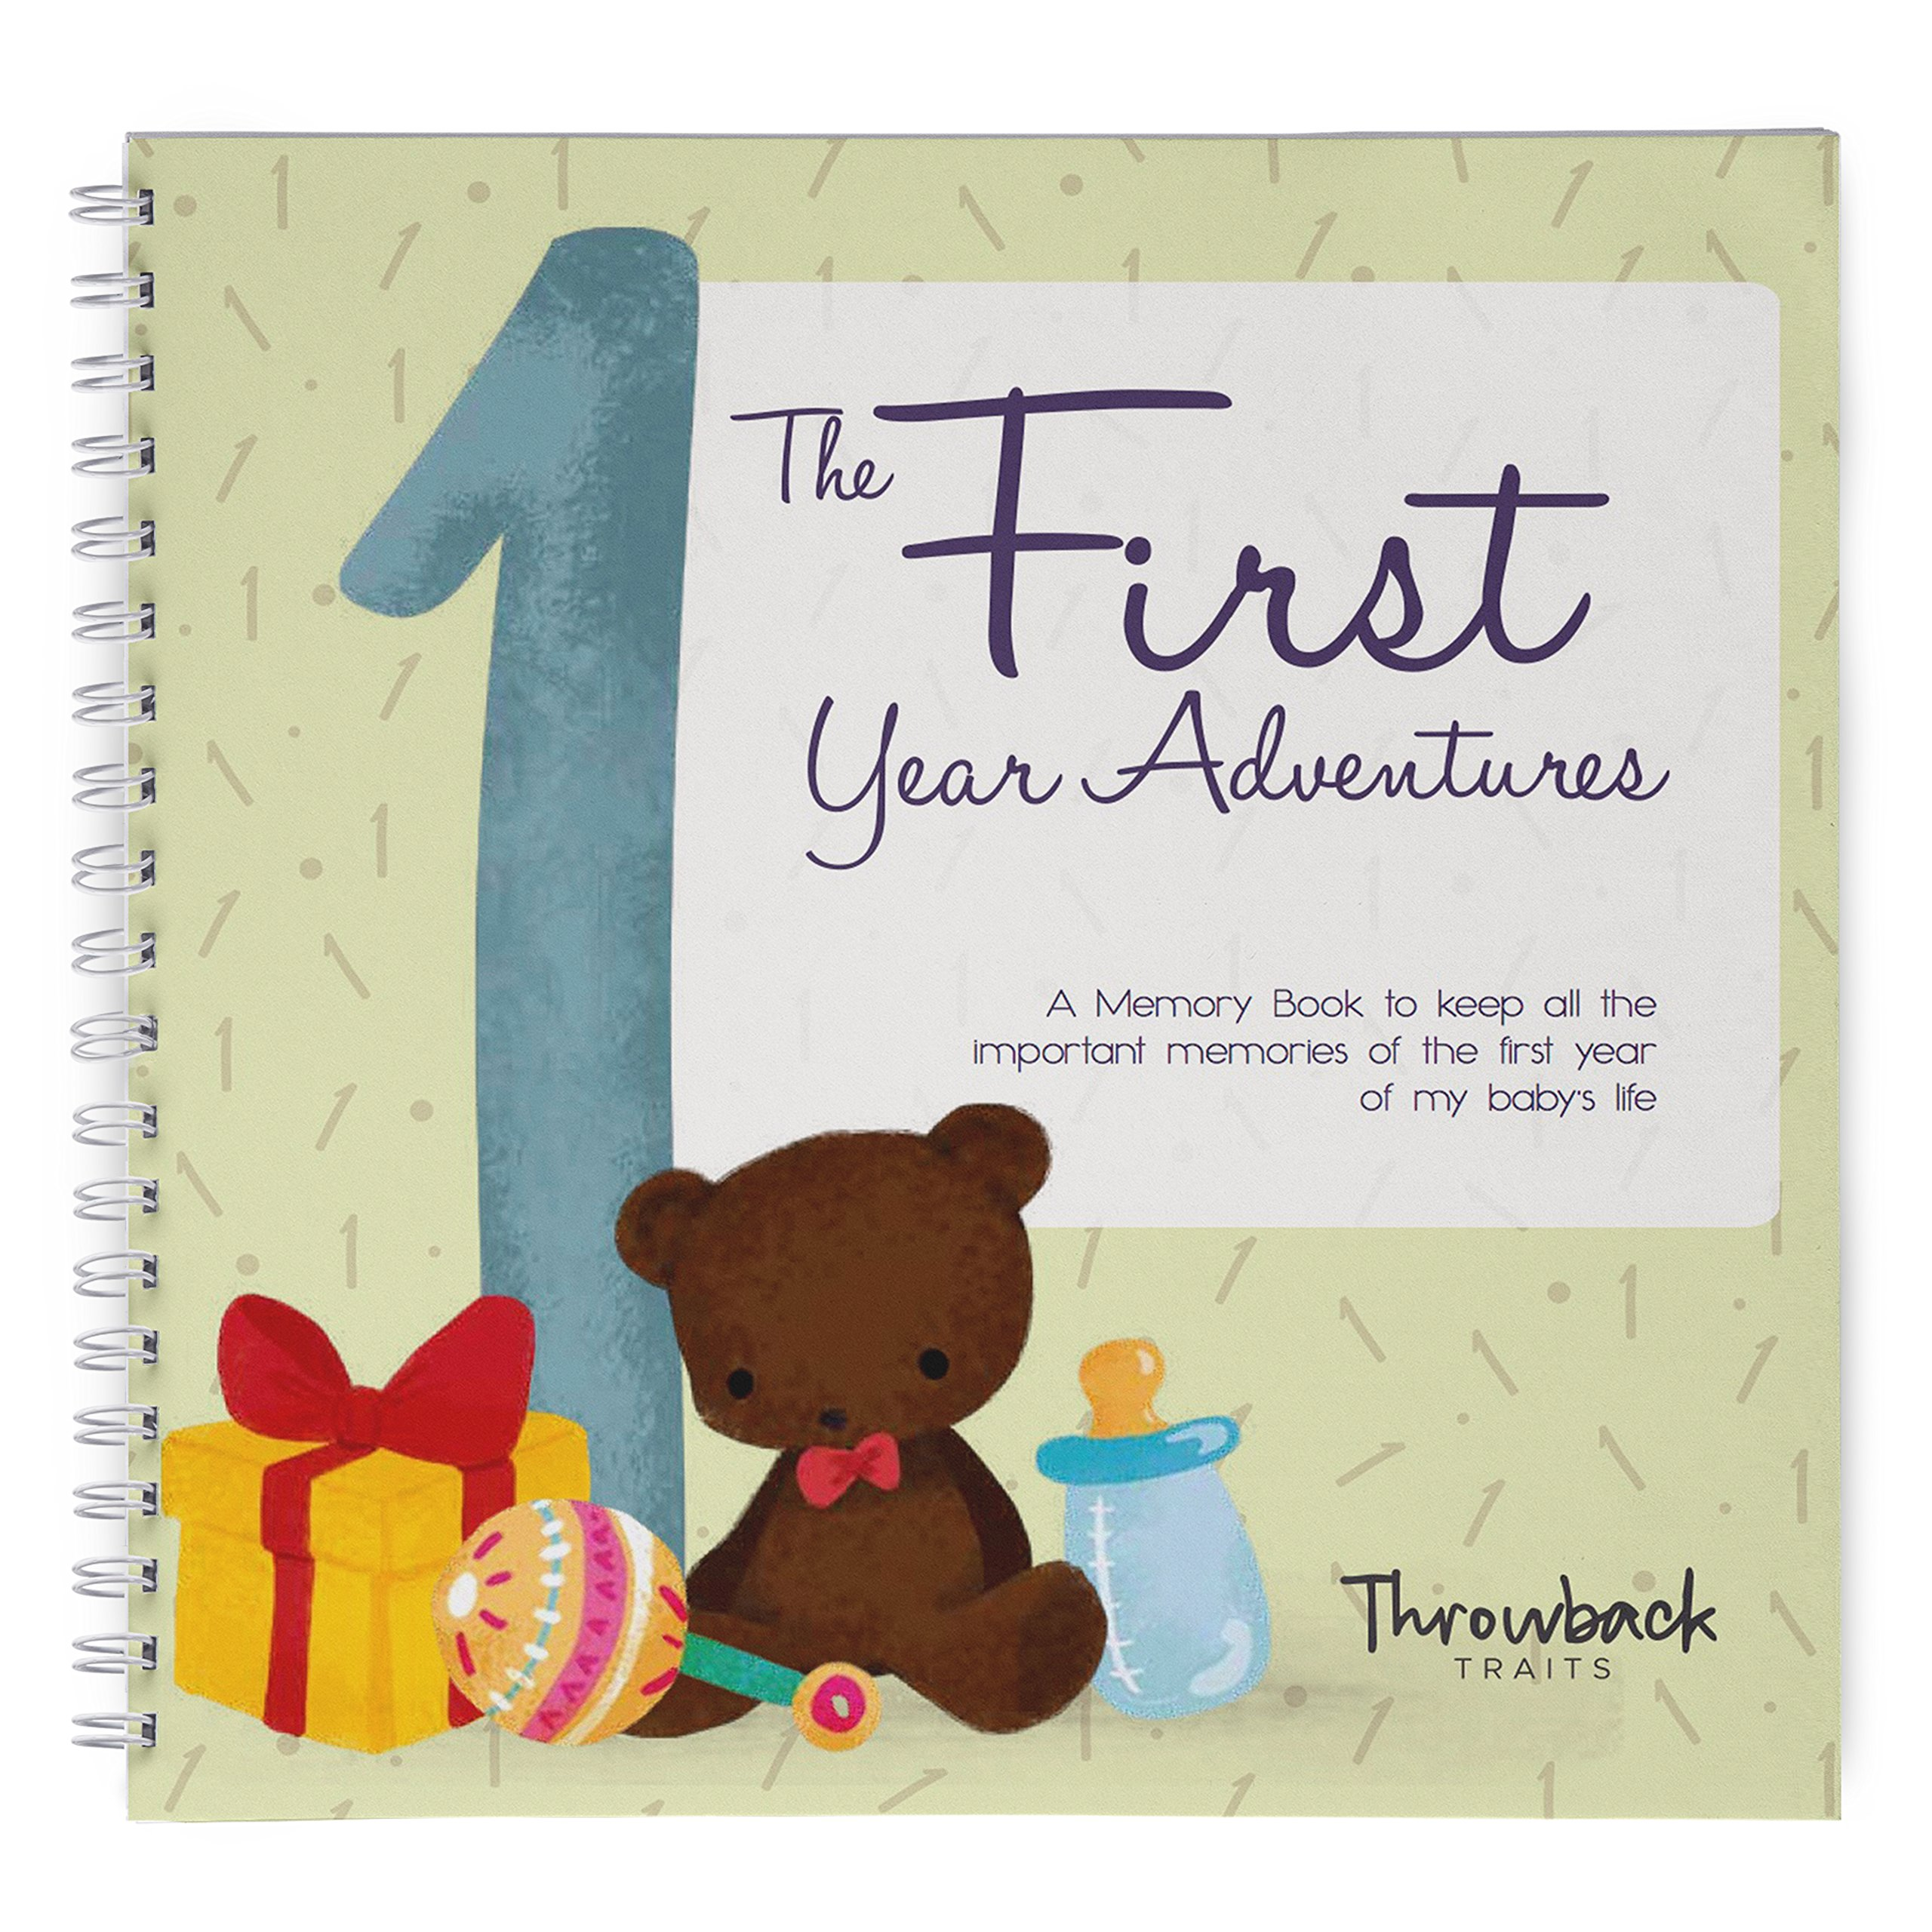 First Year Baby Memory Book, Easy to Use Keepsake Scrapbook, My First Year Adventures. Great Pregnancy or Baby Shower Gift with Space for Photo and Milestones